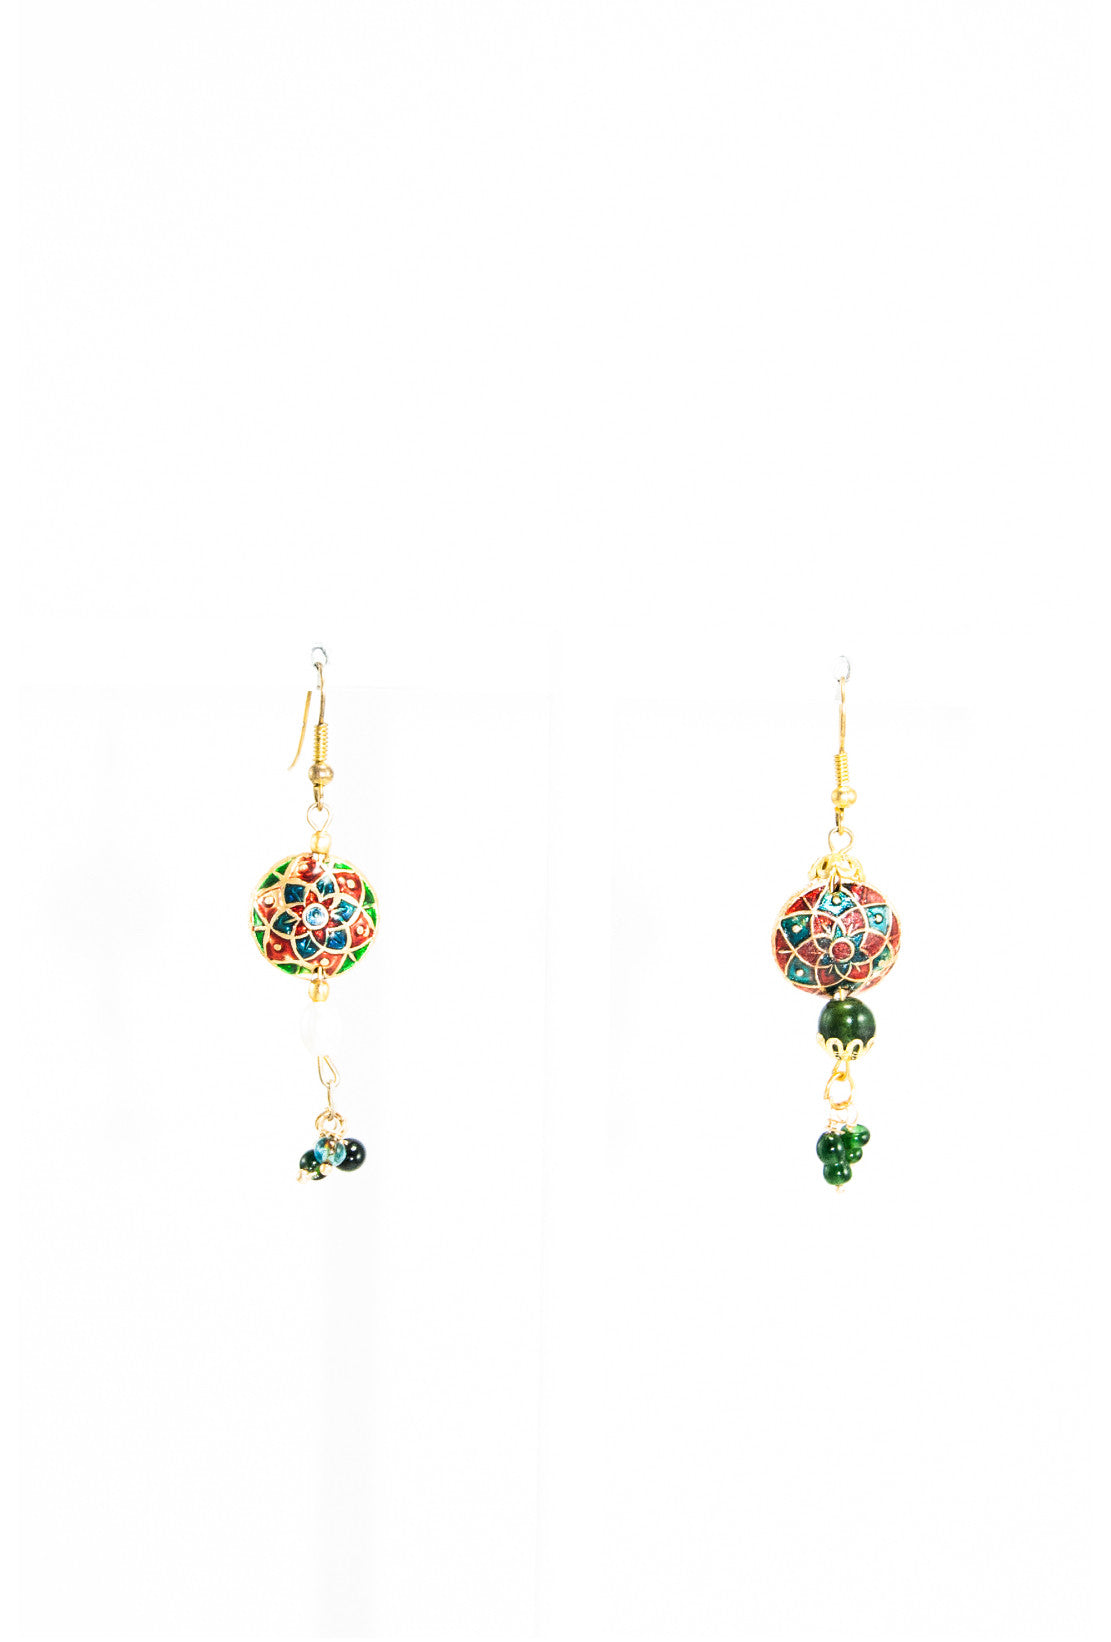 red mannequin earring quartz spinel green earrings mukthaa stone work greenquartz product